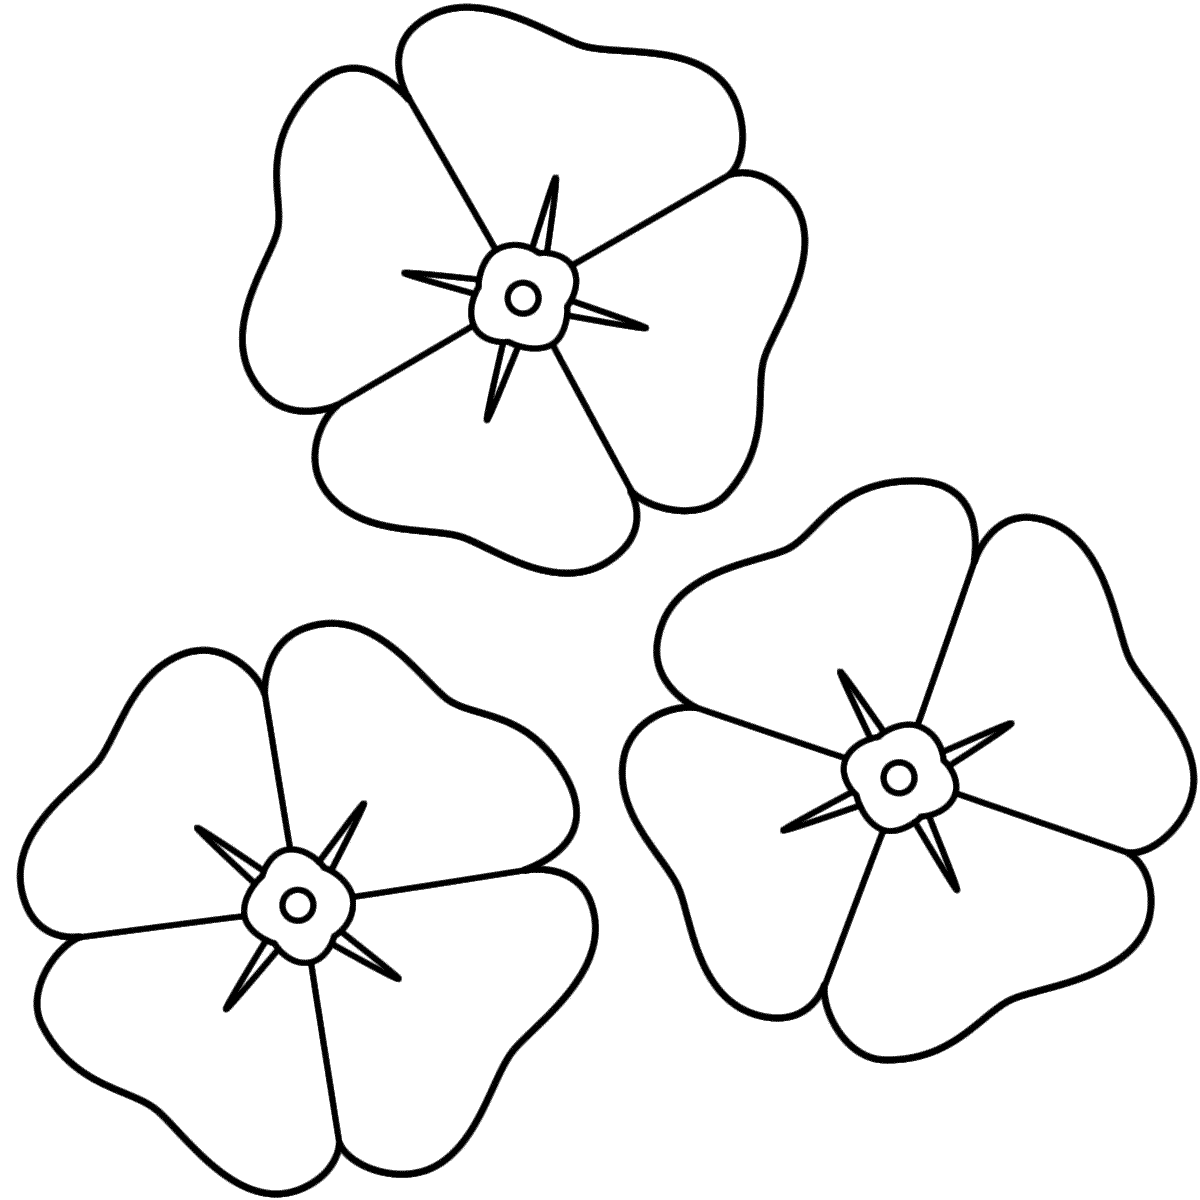 Drawn poppy anzac poppy Coloring Poppies (Anzac Coloring Day)